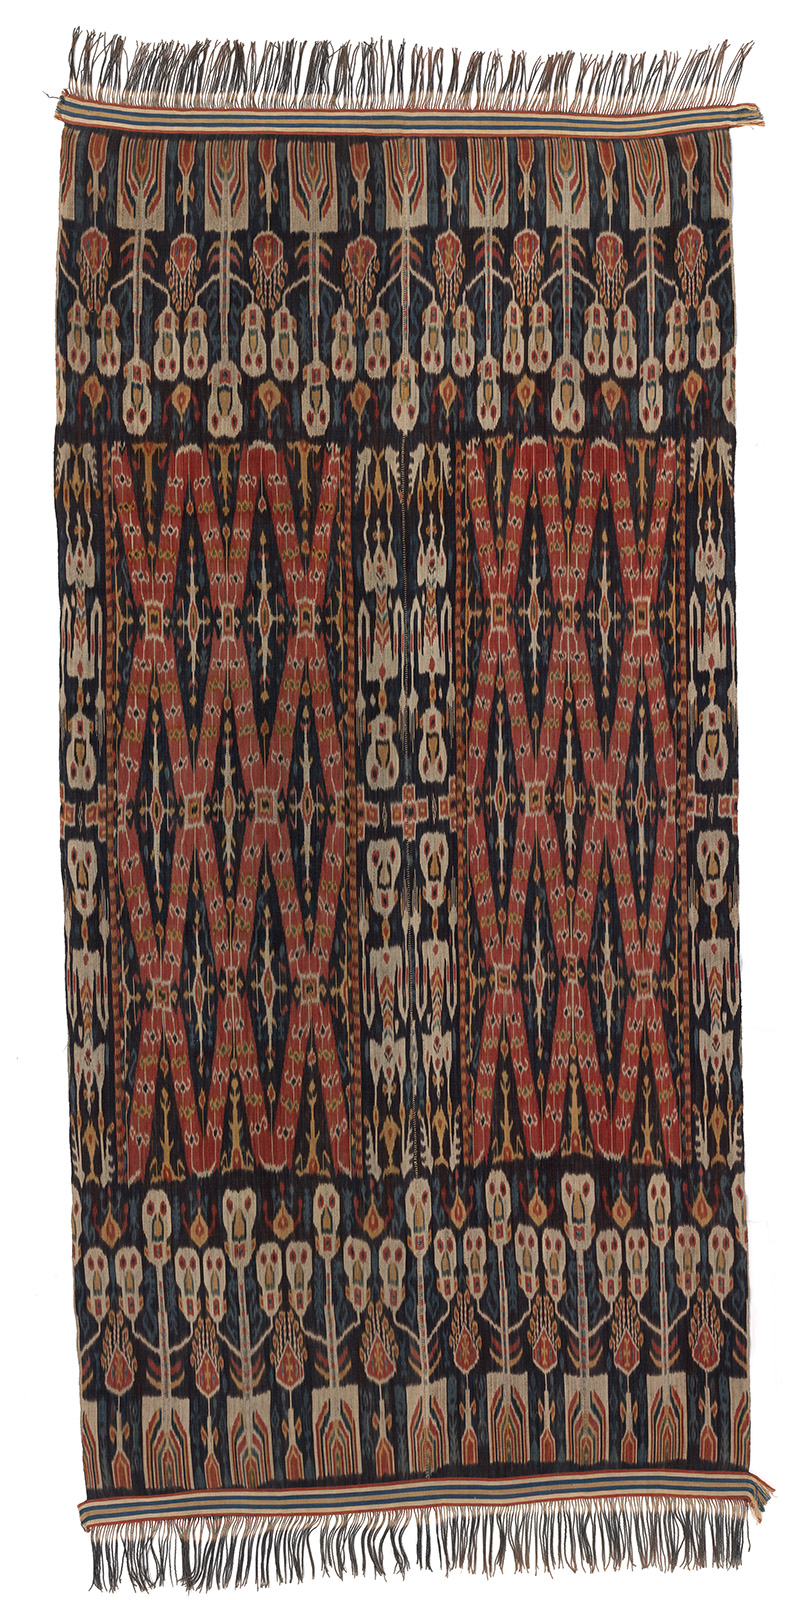 Man's Ceremonial Ikat Mantle |  Hinggi  © National Gallery of Australia